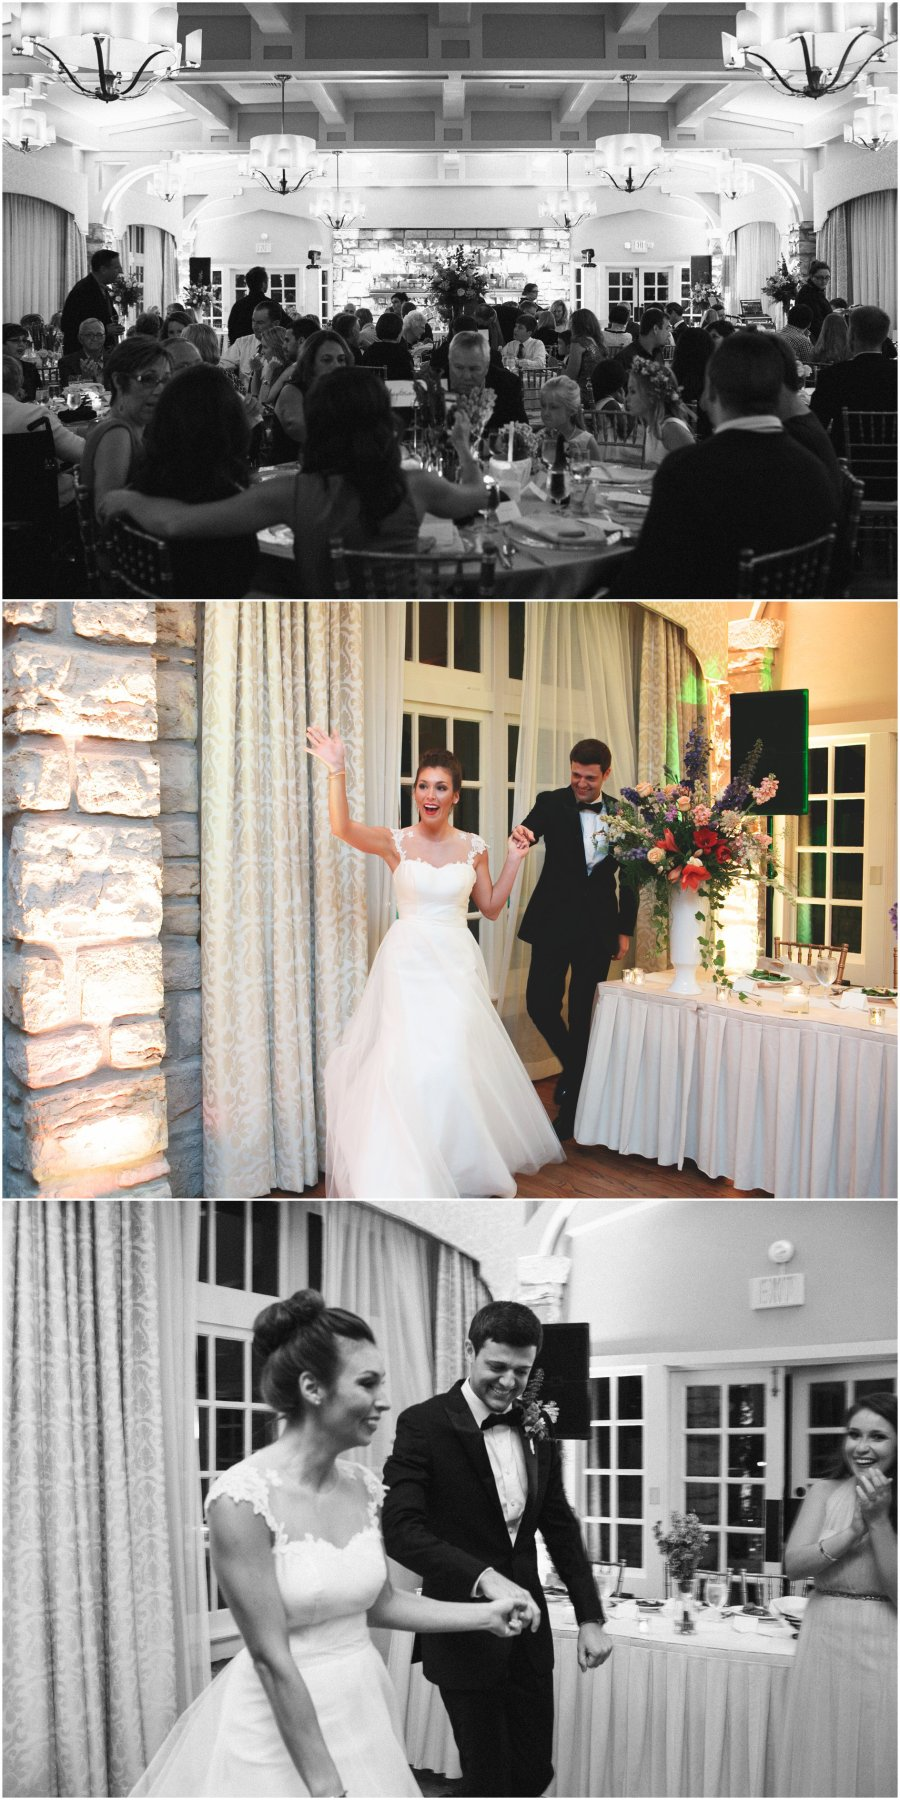 Chris + Lexi's Kansas City Wedding By Alea Lovely